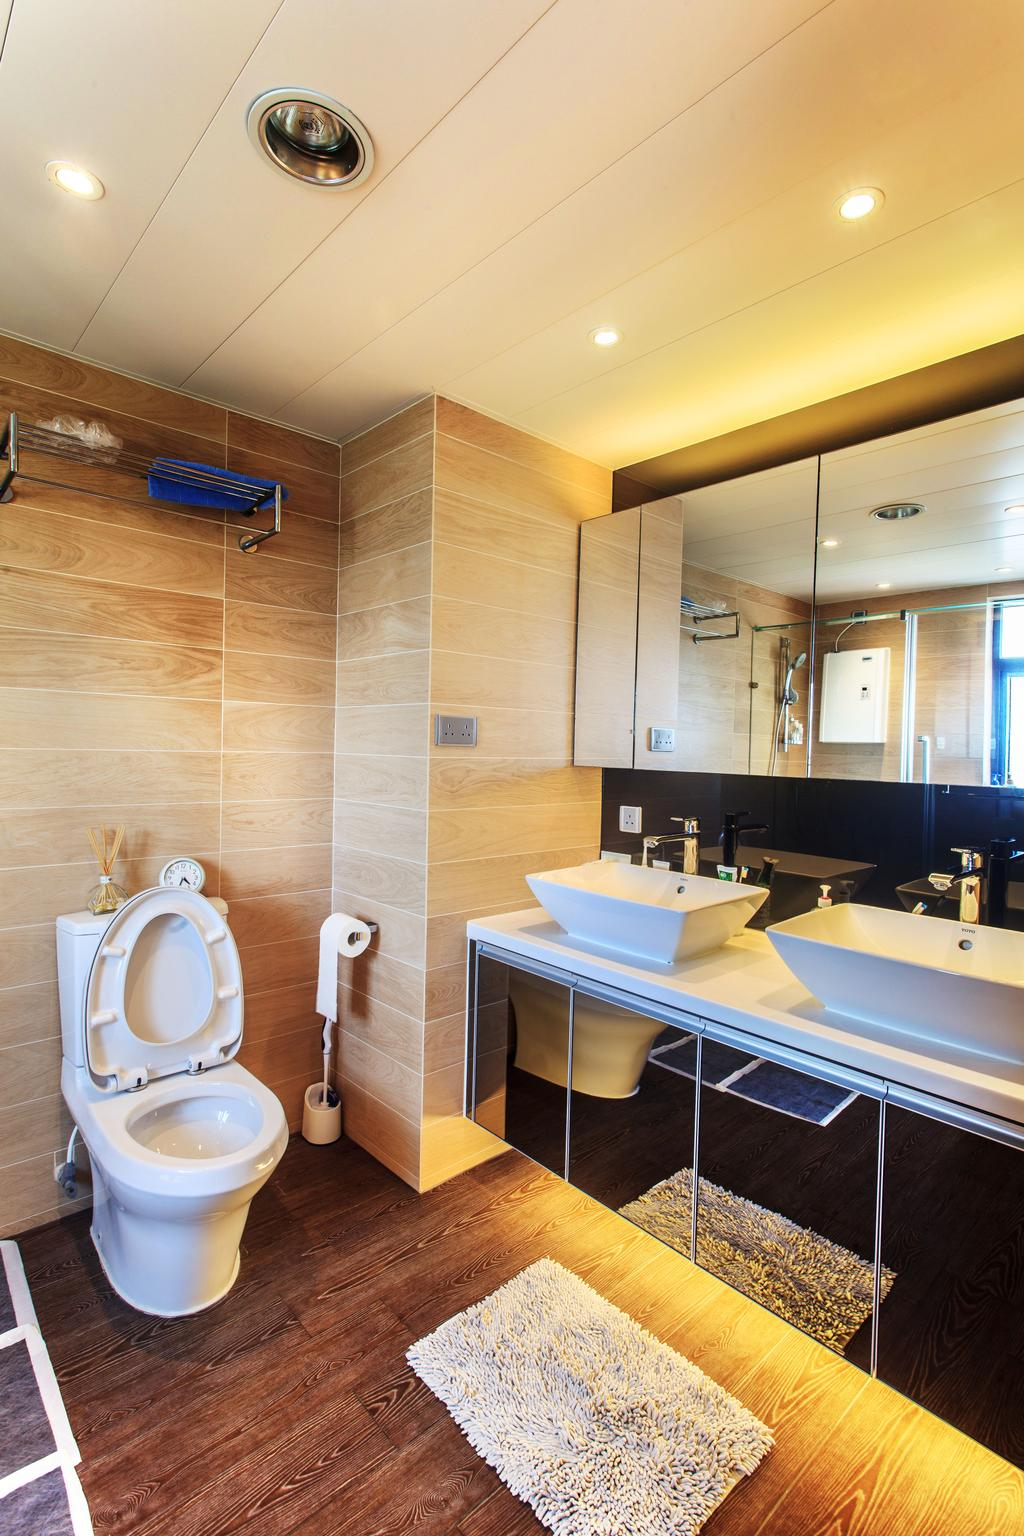 私家樓, 浴室, 華景山莊, 室內設計師, Homing Interior Design, Sink, Toilet, Indoors, Interior Design, Bench, Room